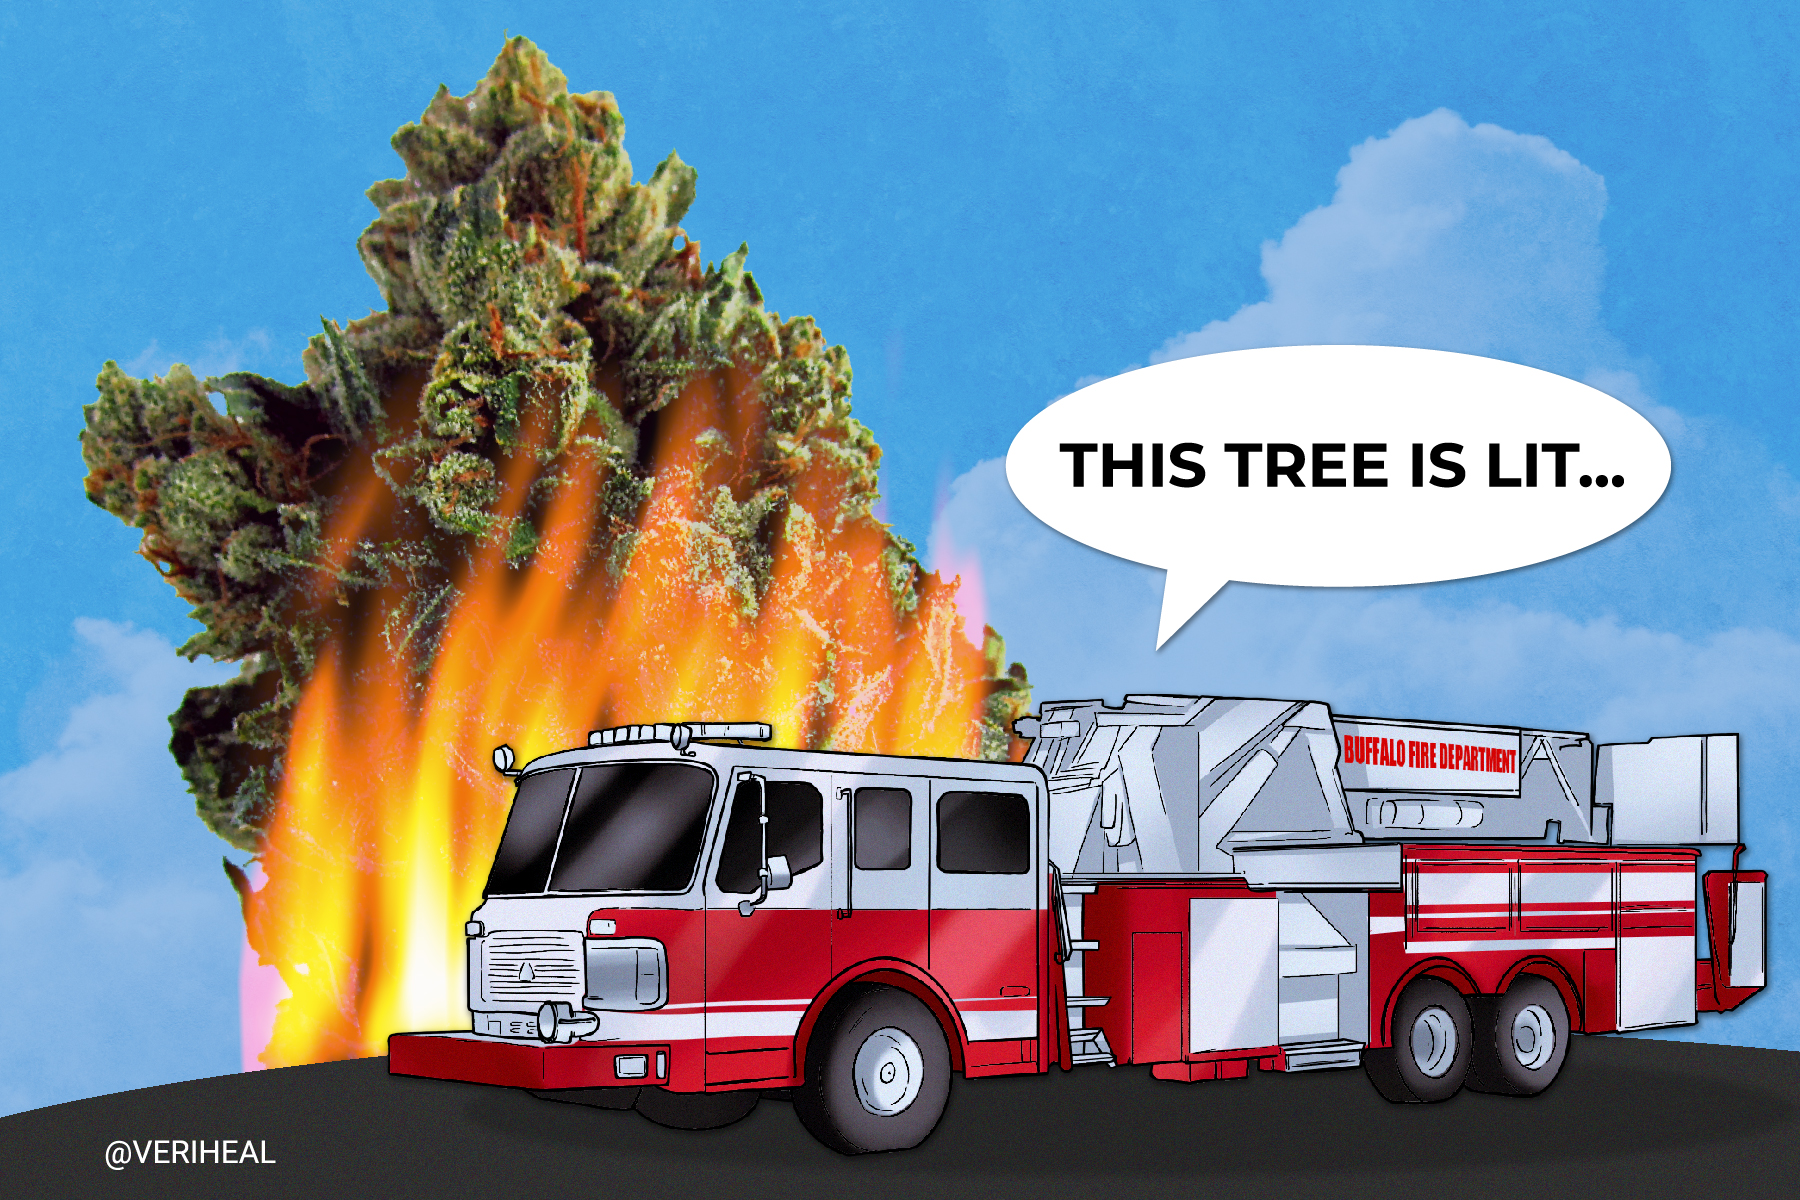 This Firefighter is Fired Up After Getting Fired for Medical Cannabis